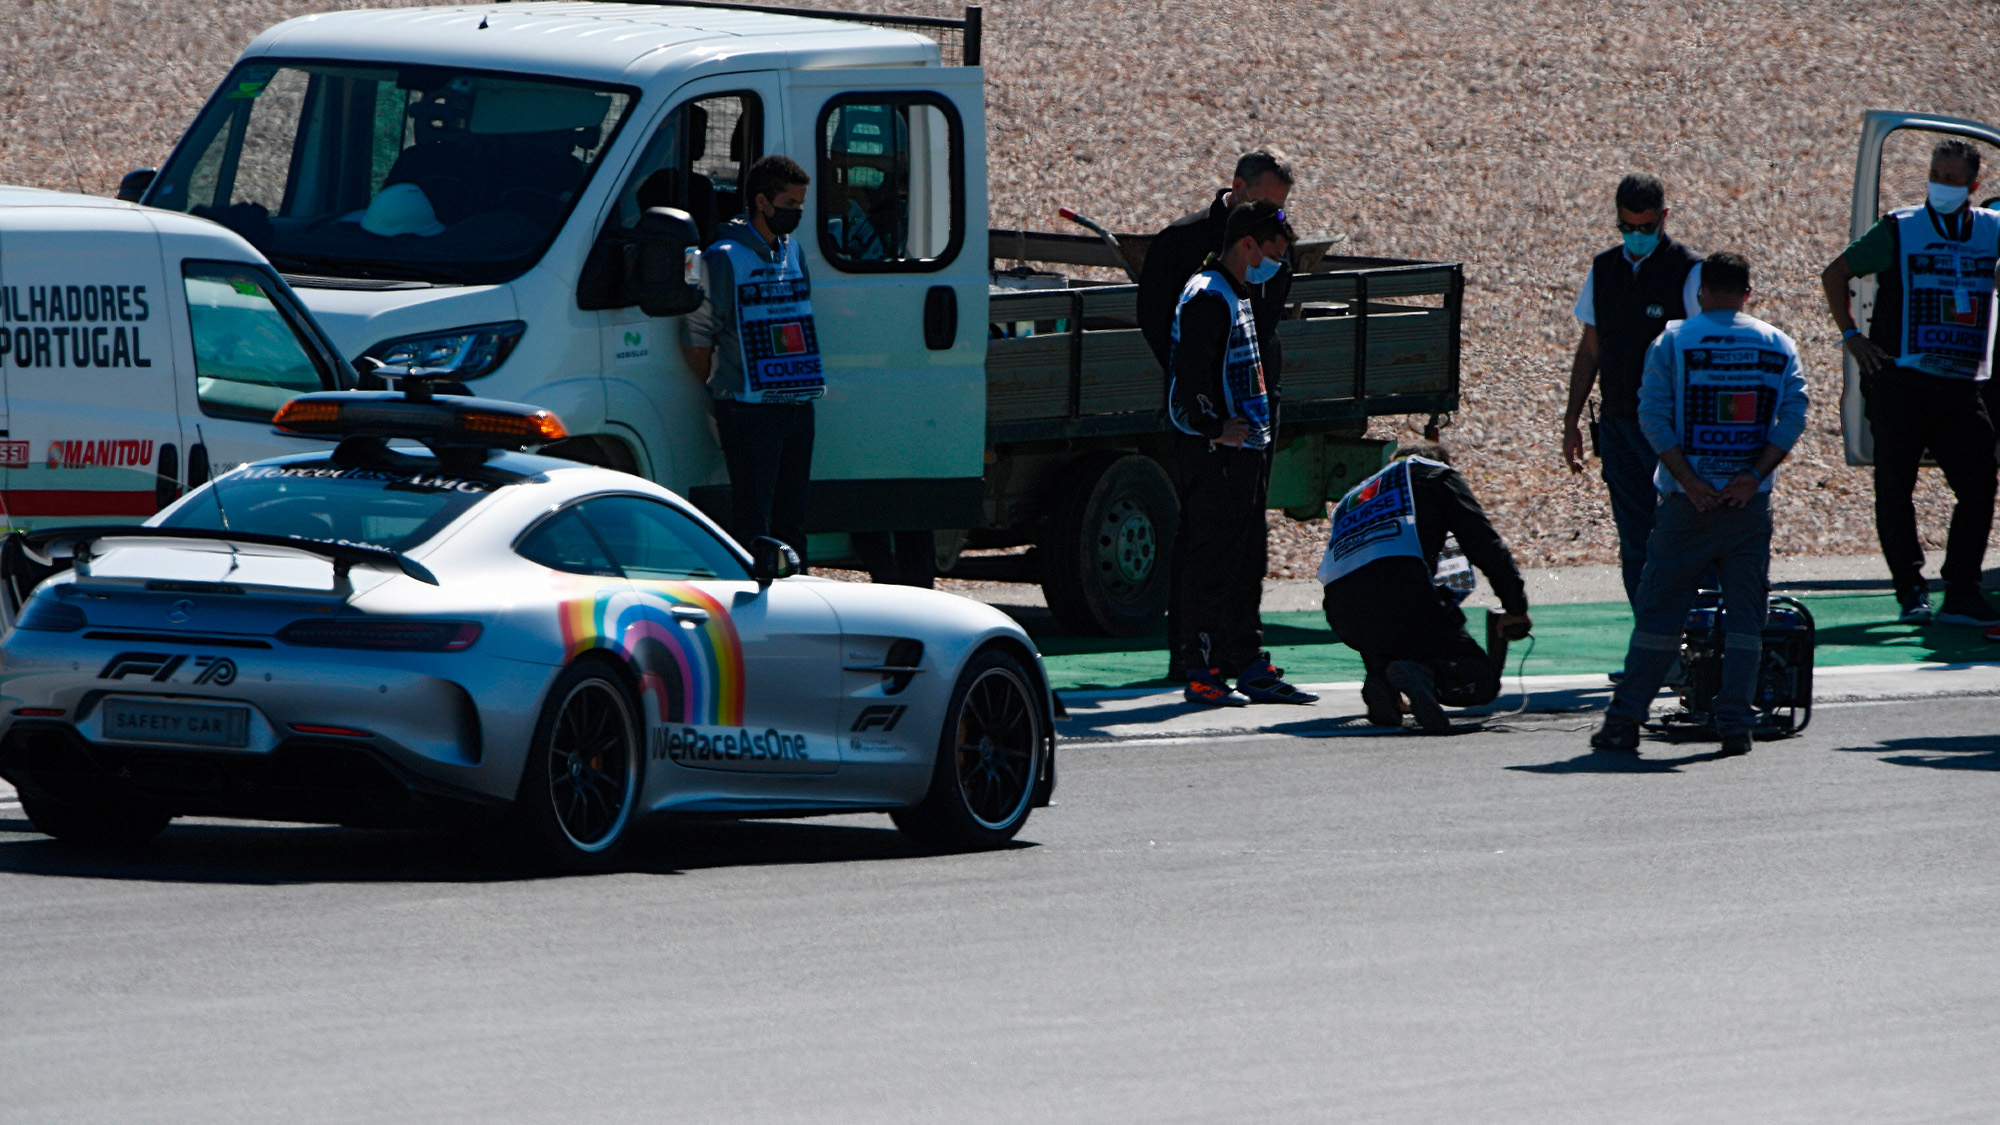 Engineers inspect drain covers on the circuit at Portimao ahead of qualifying for the 2020 Portuguese Grand prix